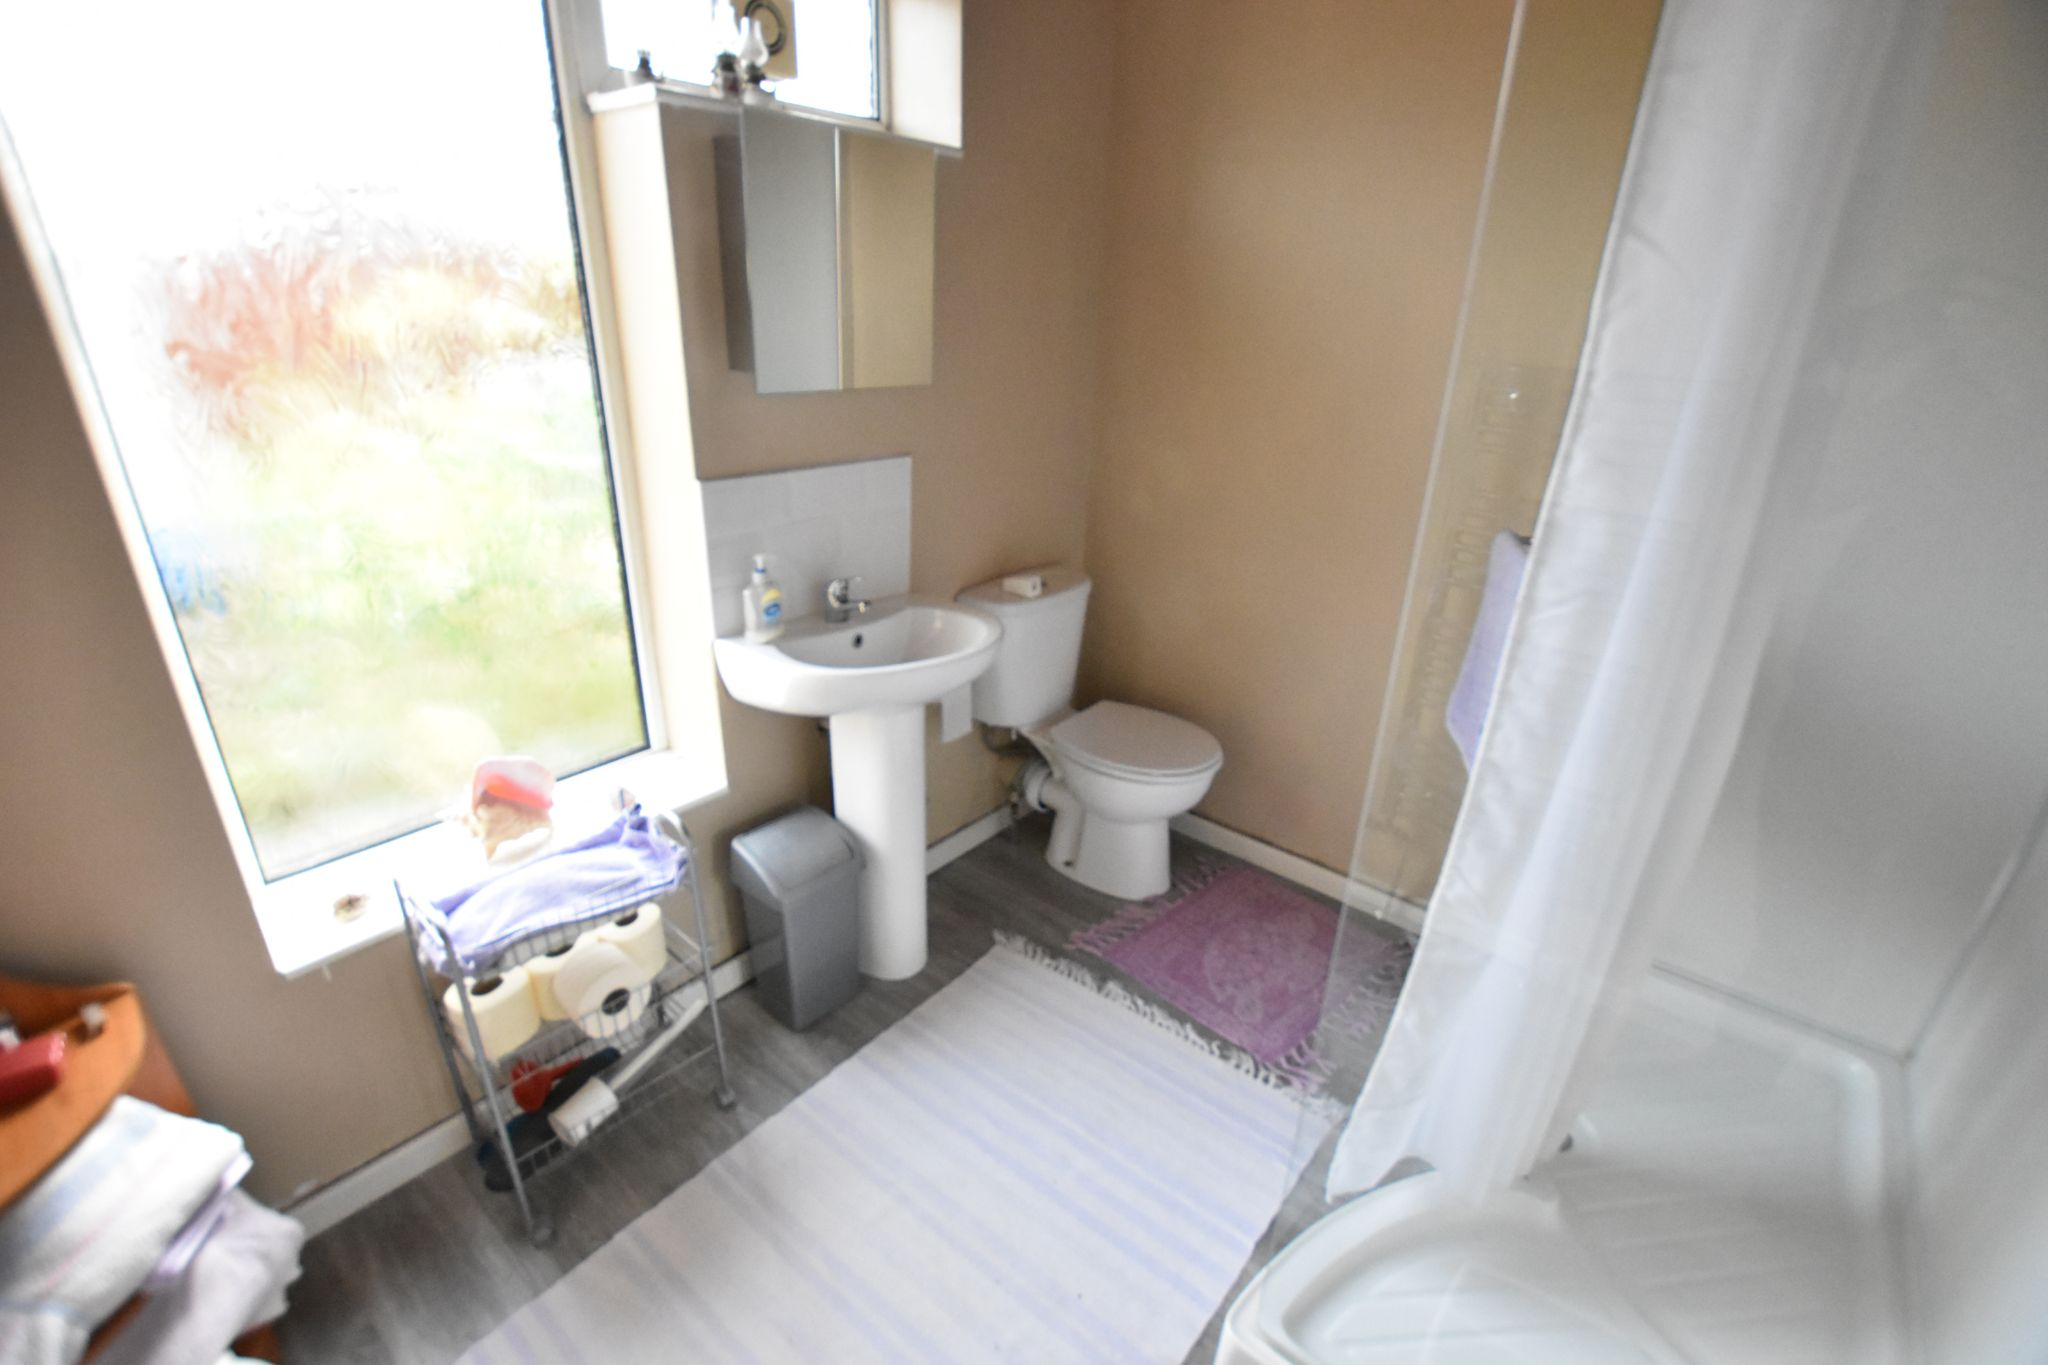 Image 1 of 4 of BATHROOM, on Accommodation Comprising for